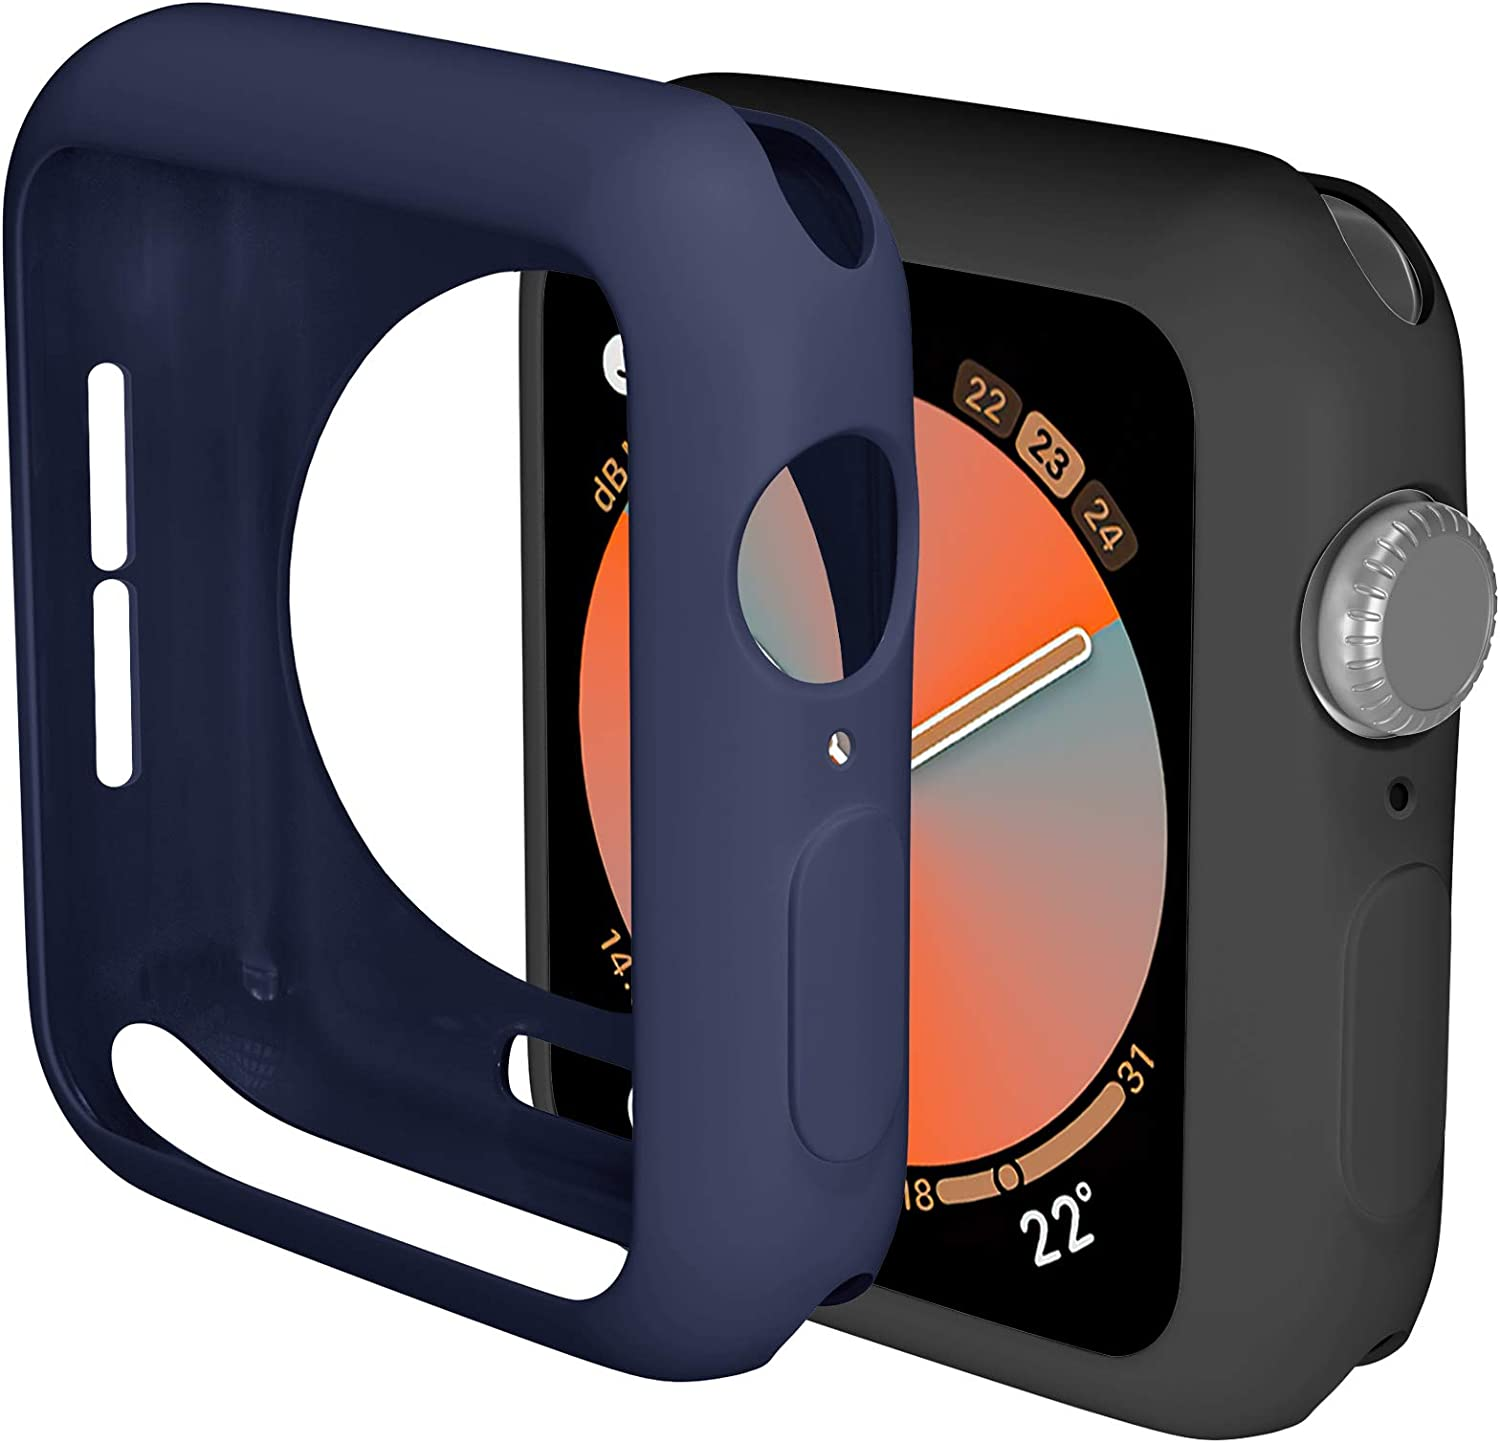 ZAROTO 40mm Case Compatible for Apple Watch Series 6 Series 5 4 SE Protector, 2pack Soft Bumper Protective for iwatch 40mm Cover Case Flexible TPU Thin Lightweight Women Men (Black/Navy Blue)